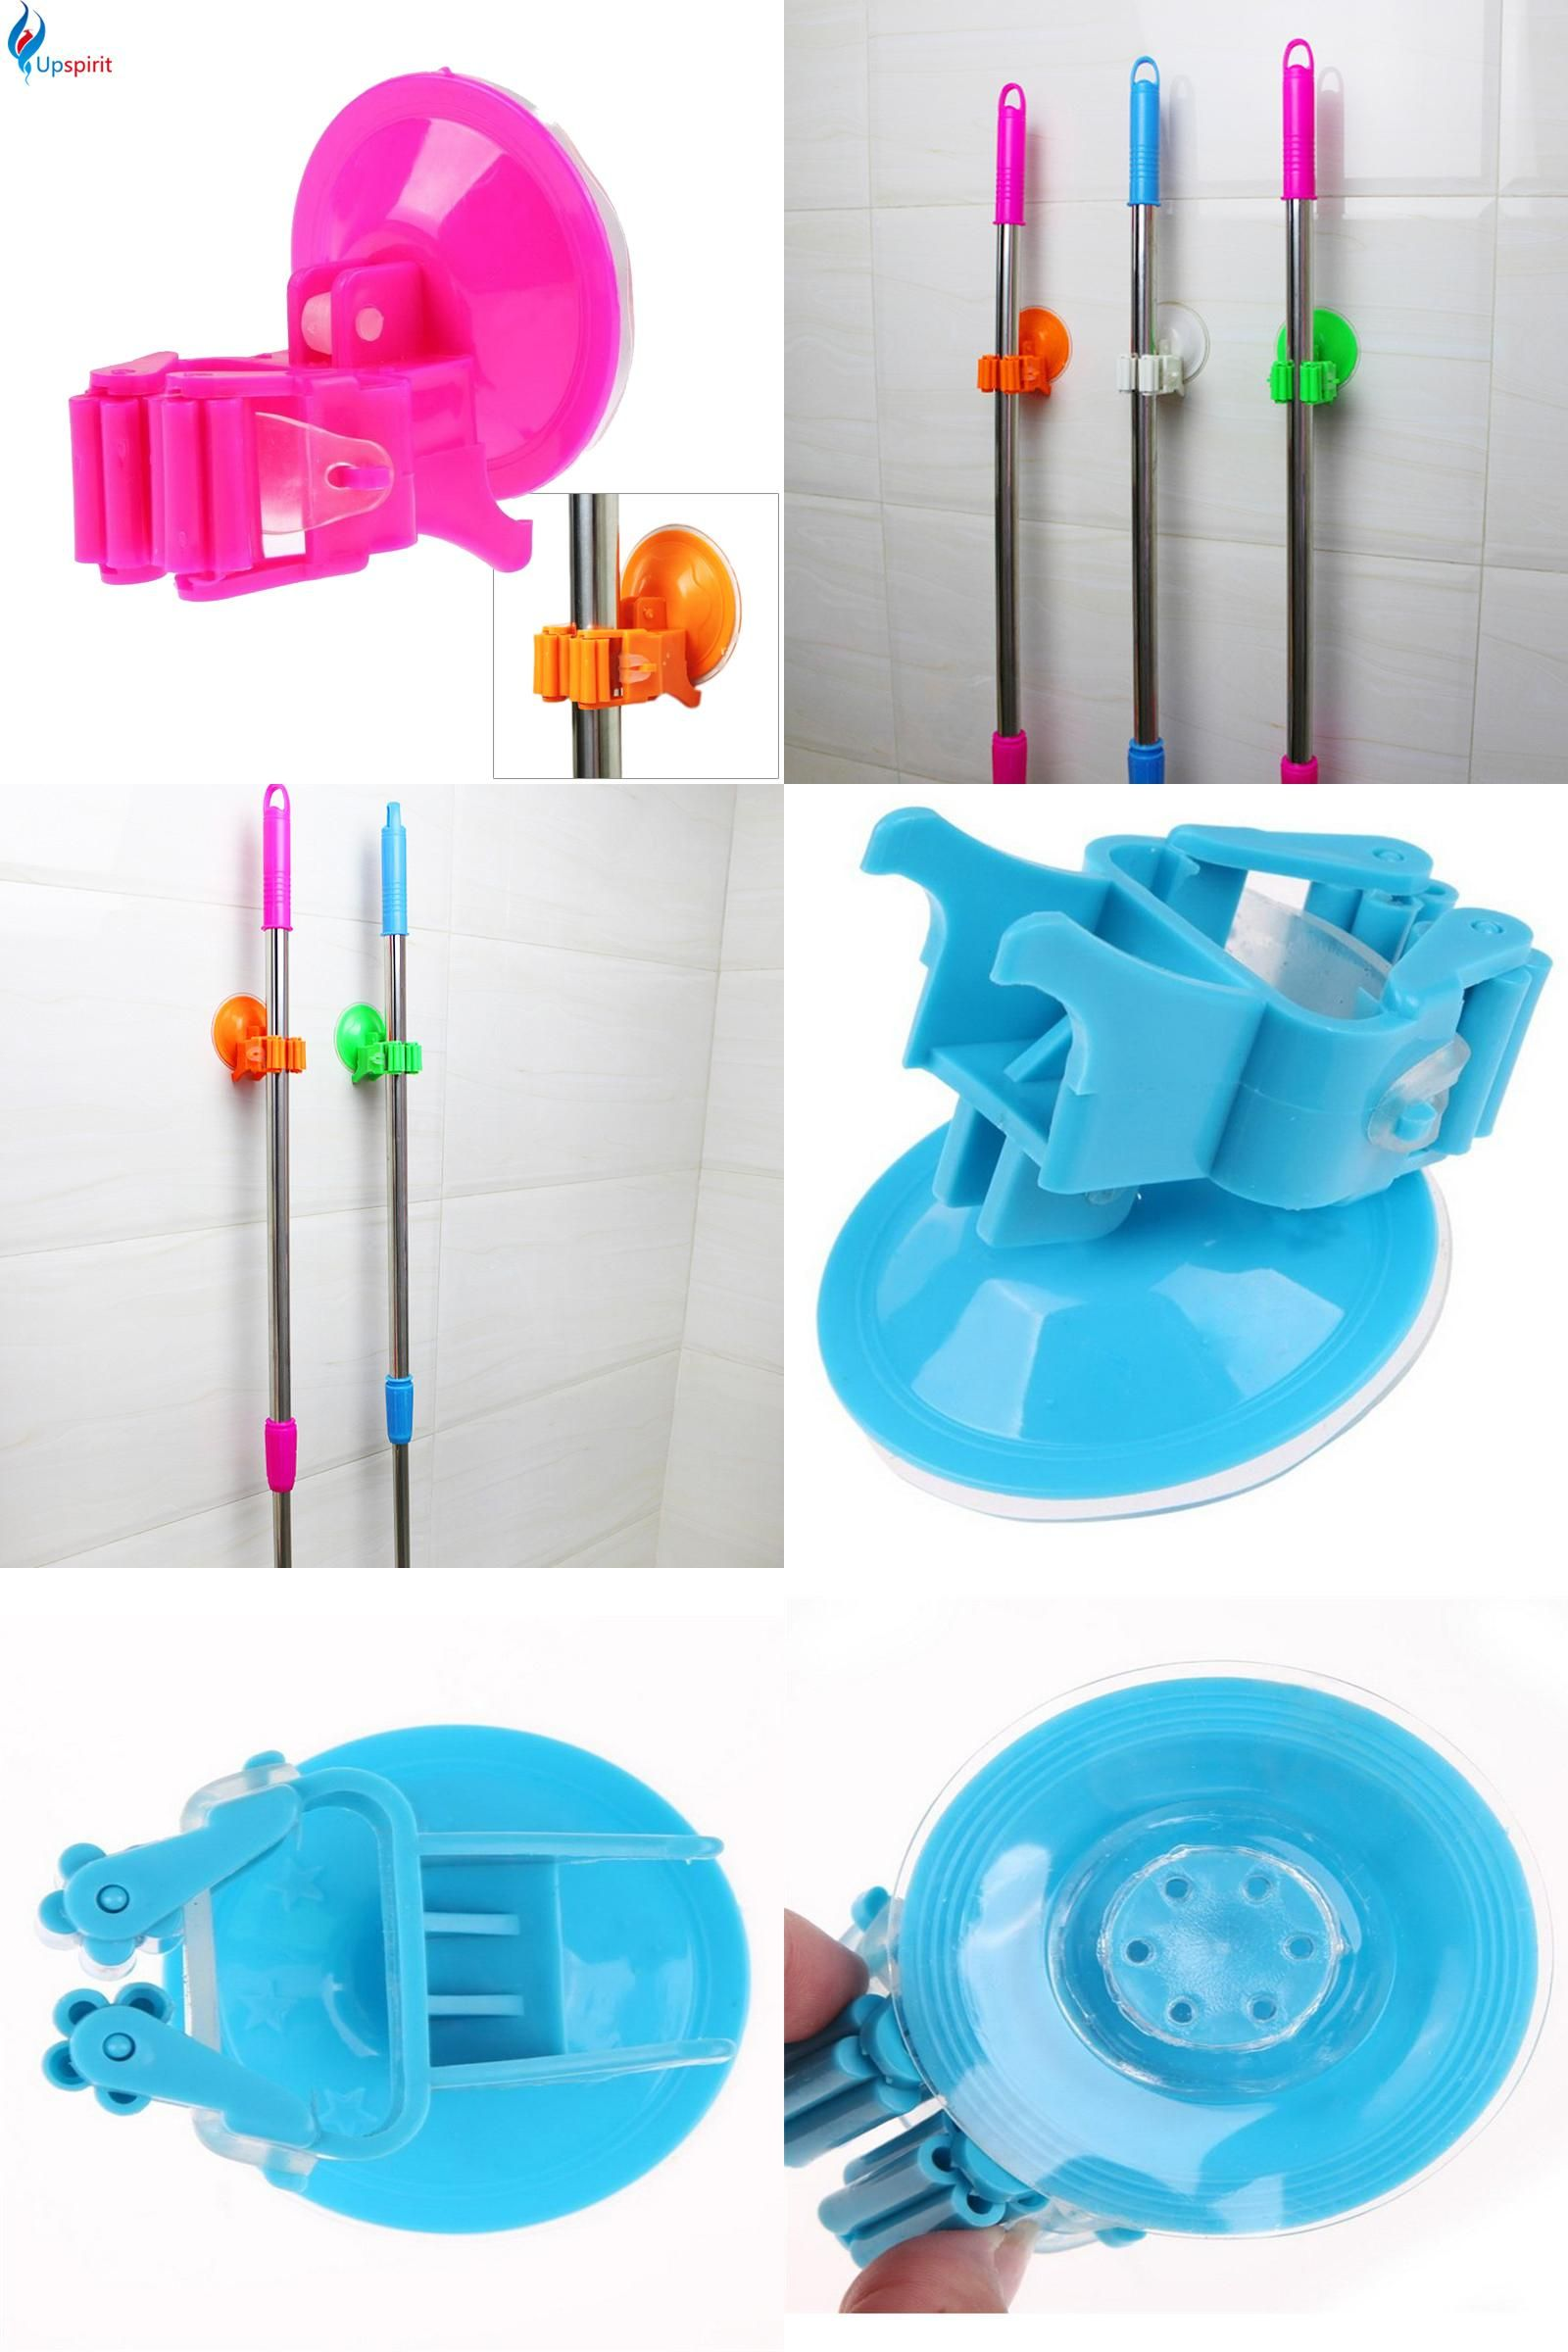 Visit to Buy] 2017 New Arrival High Quality Multifunctional Mop ...